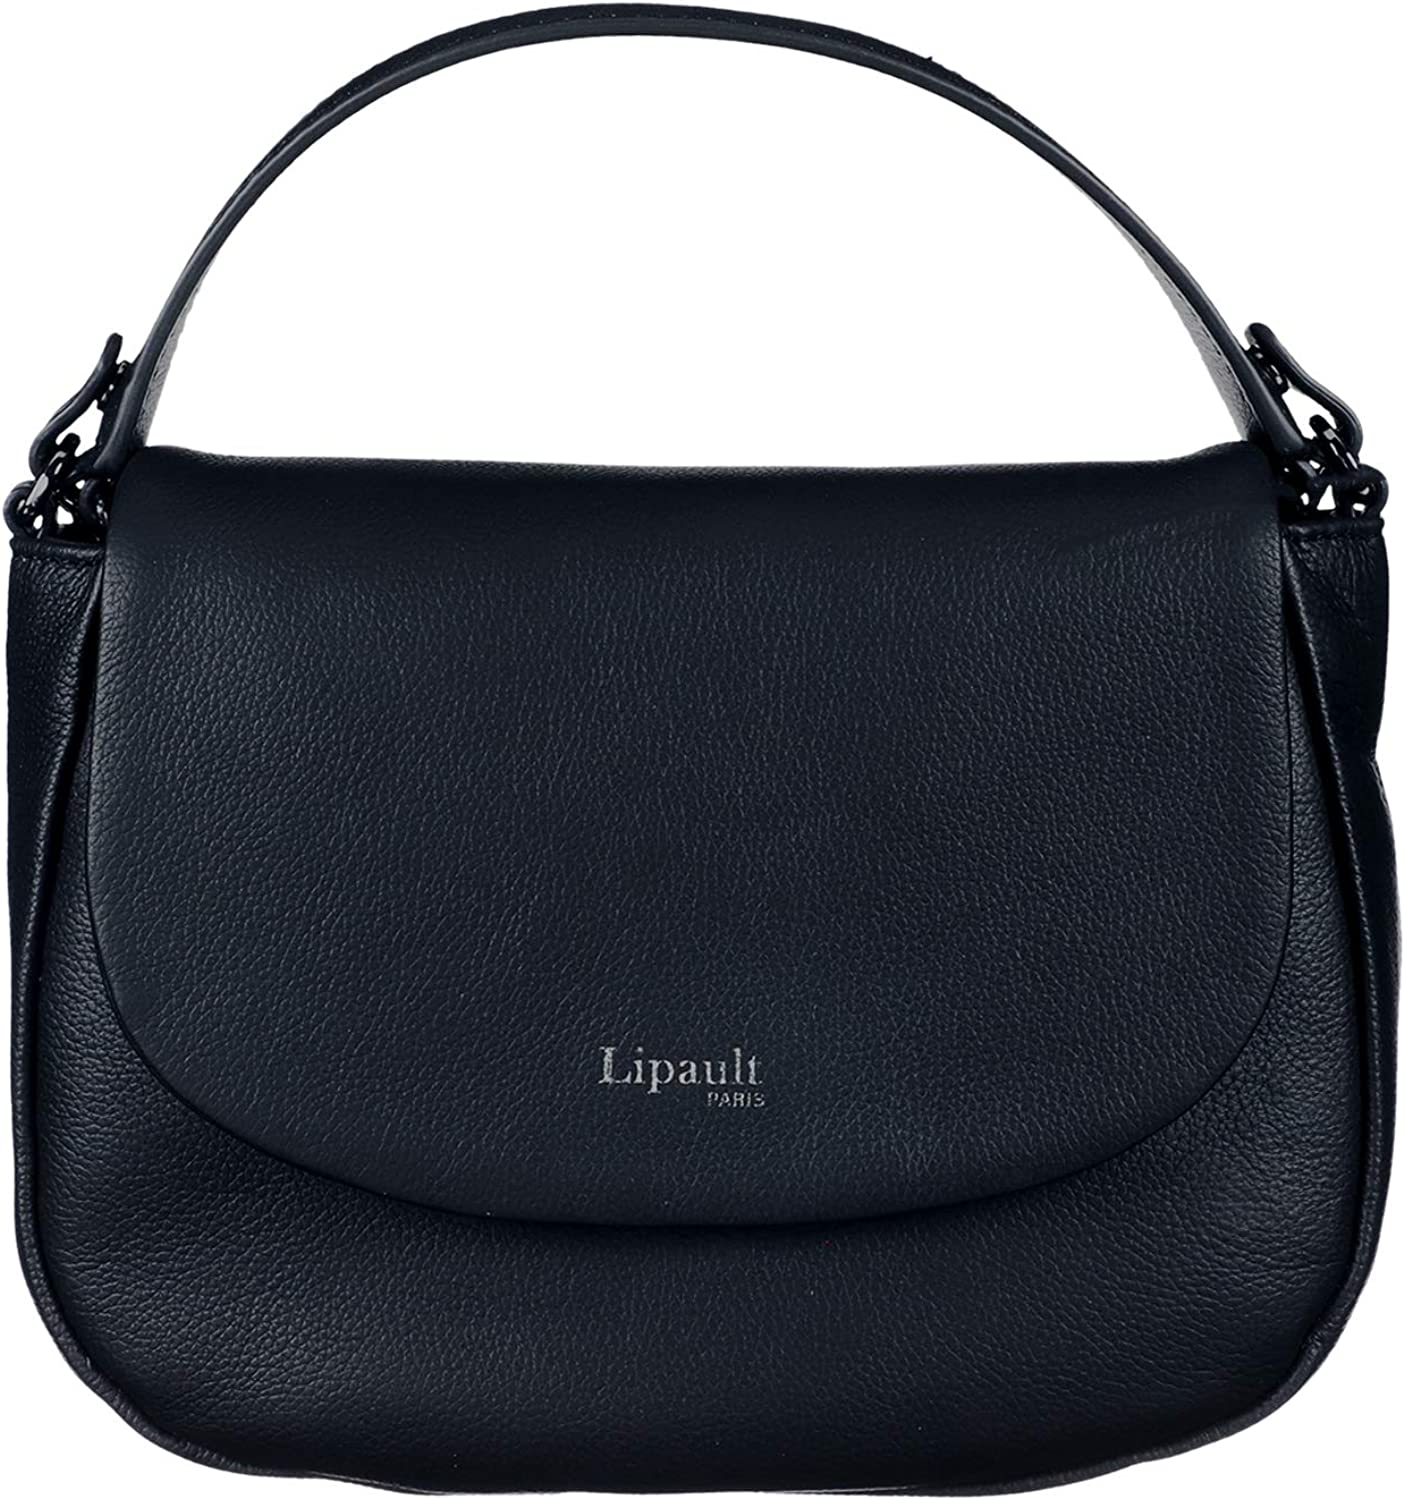 Top 10 Laptop Handbag Brahmin Melbourne